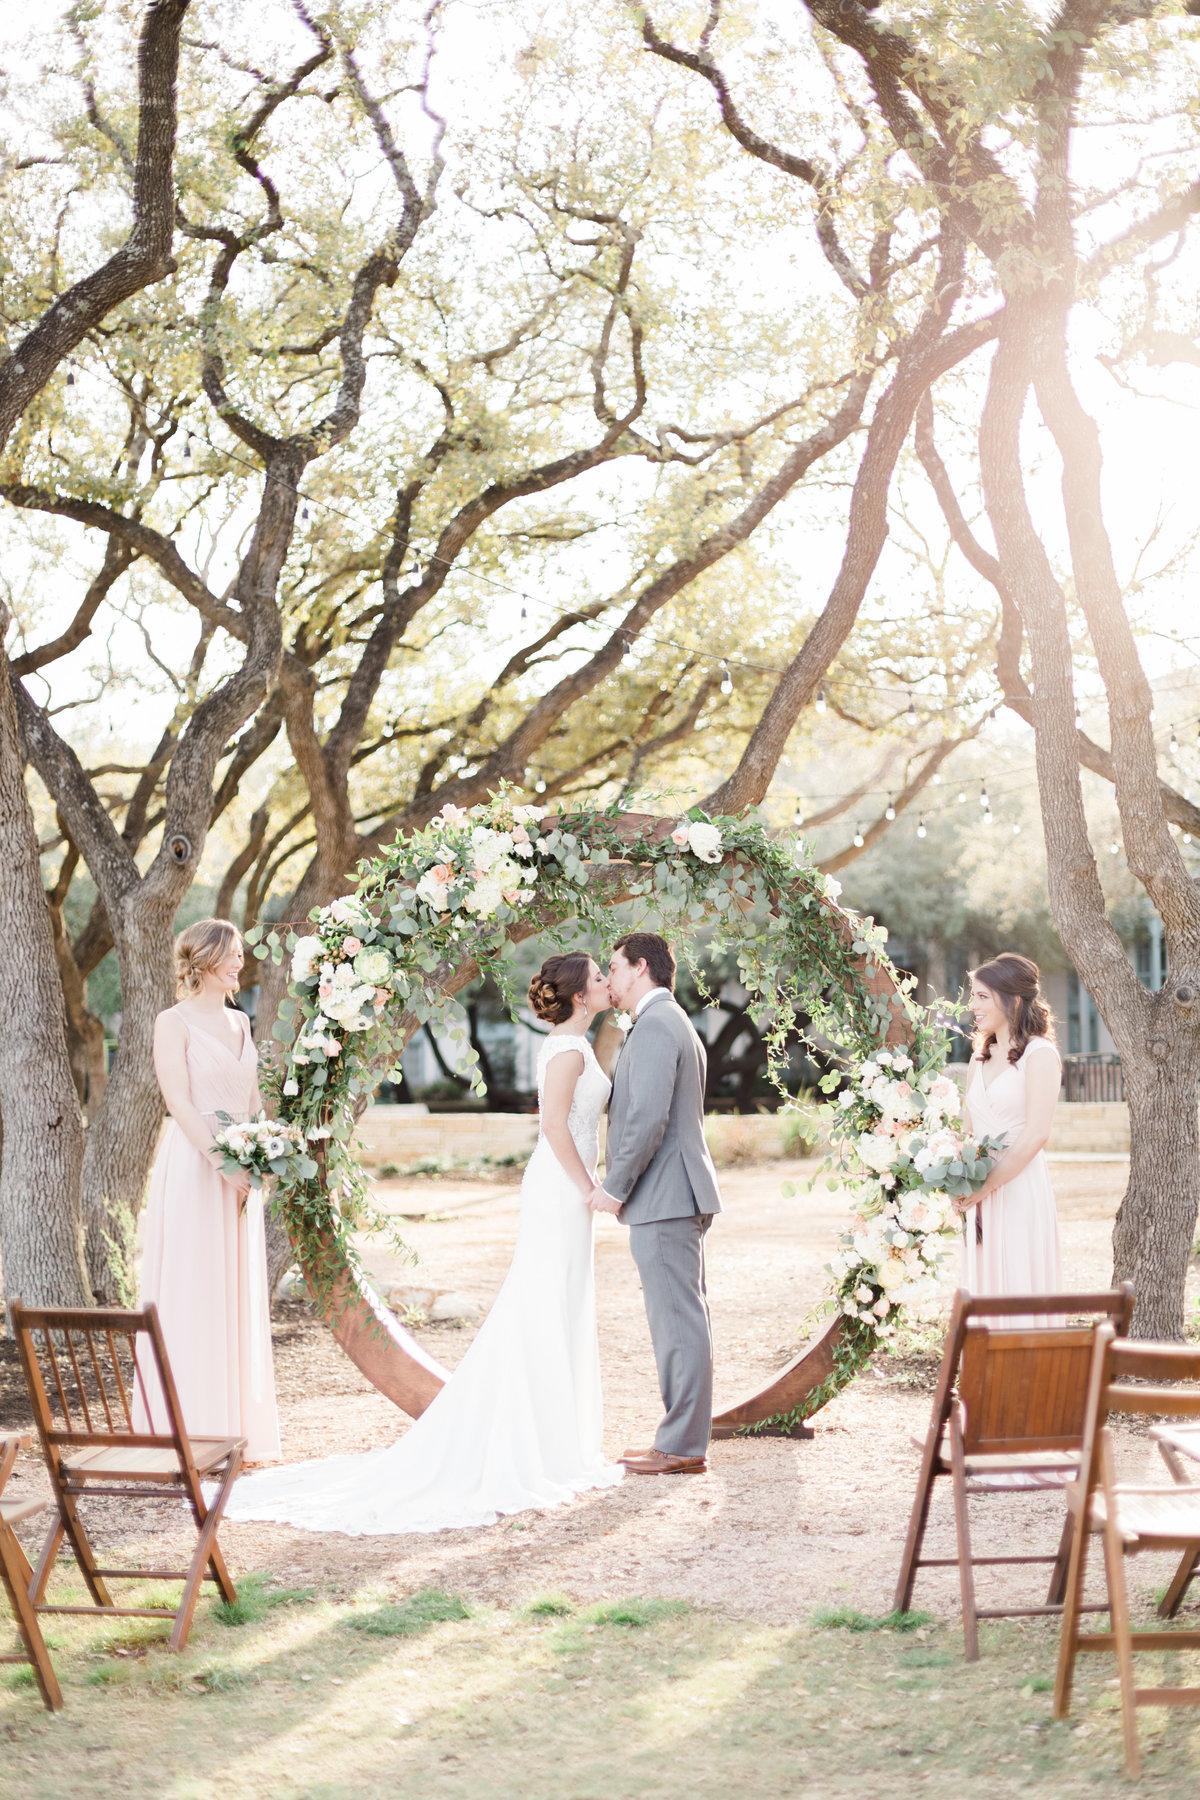 Hyatt hill country wedding photos in San Antonio texas